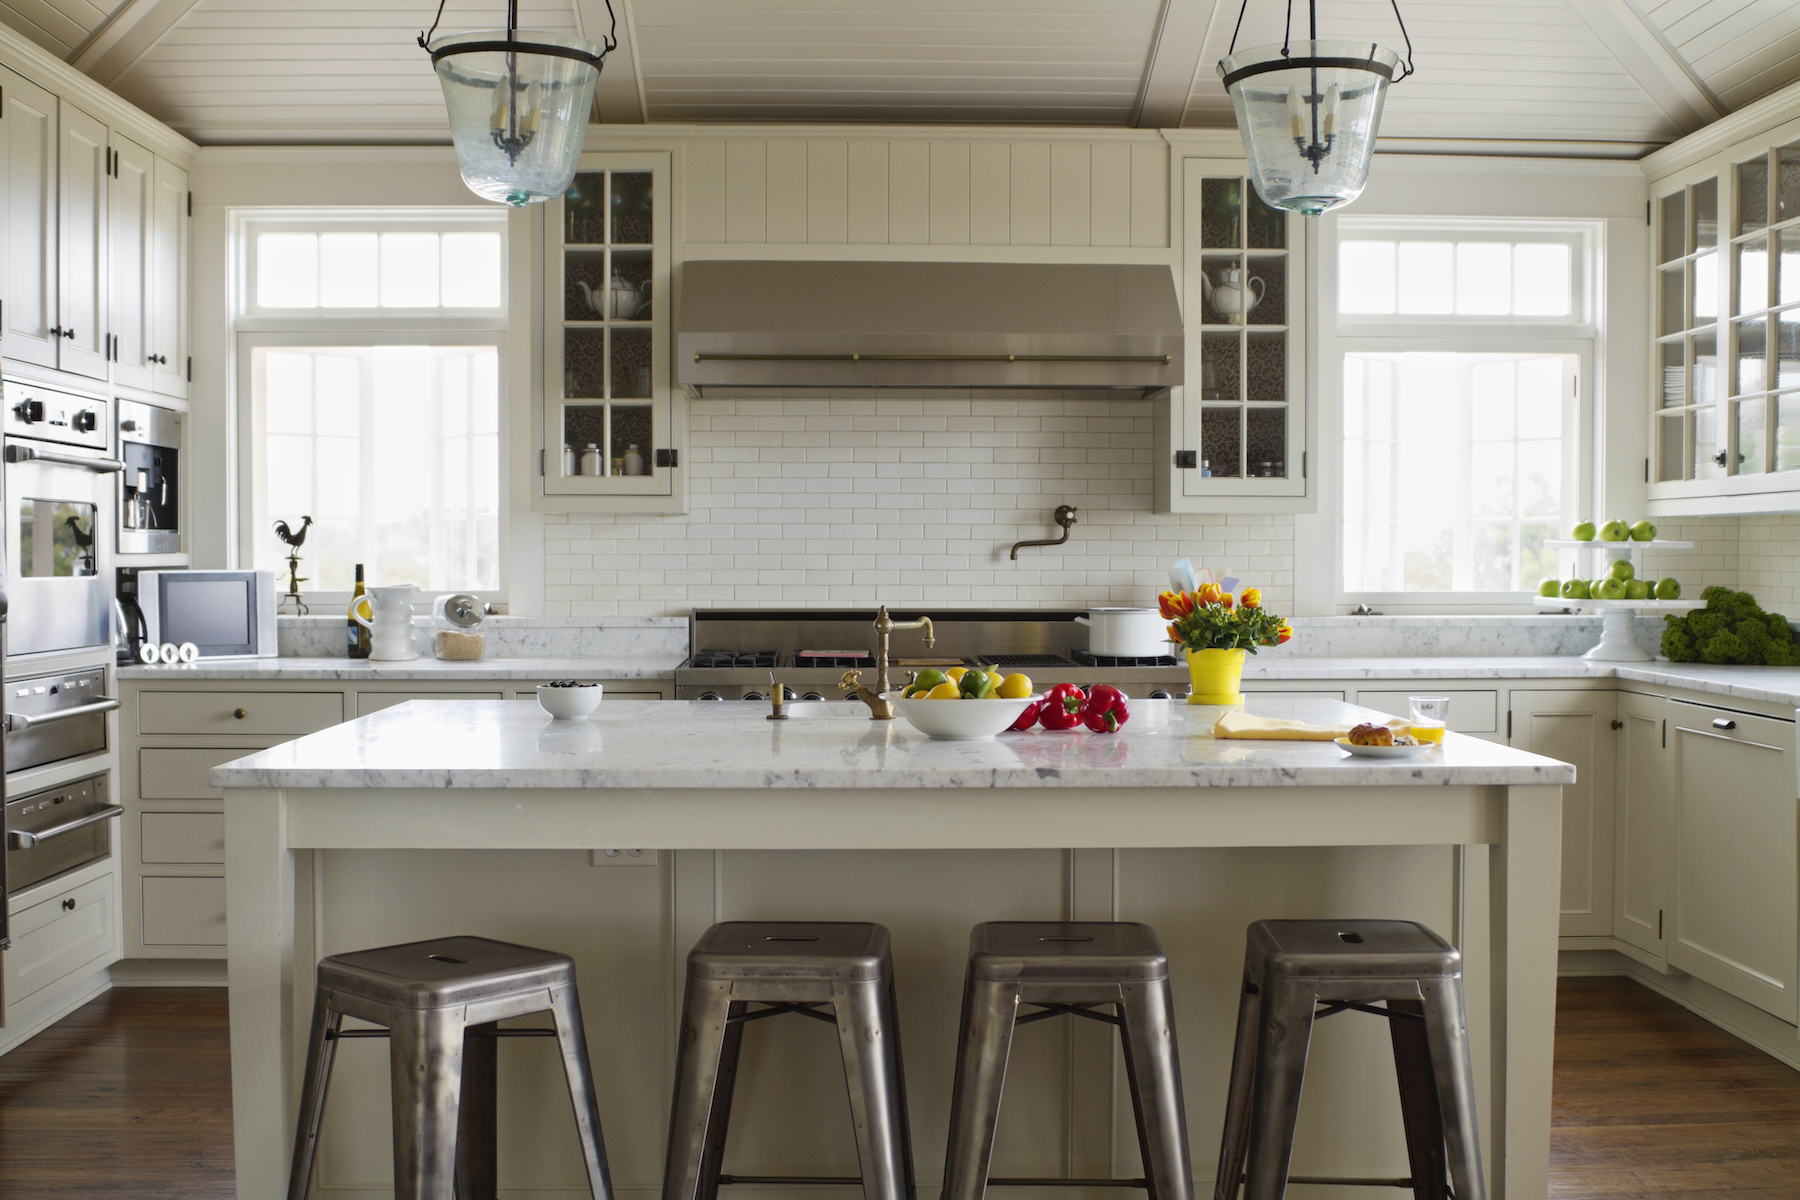 5 Kitchen Trends That Will Be Huge In 2019 Real Simple